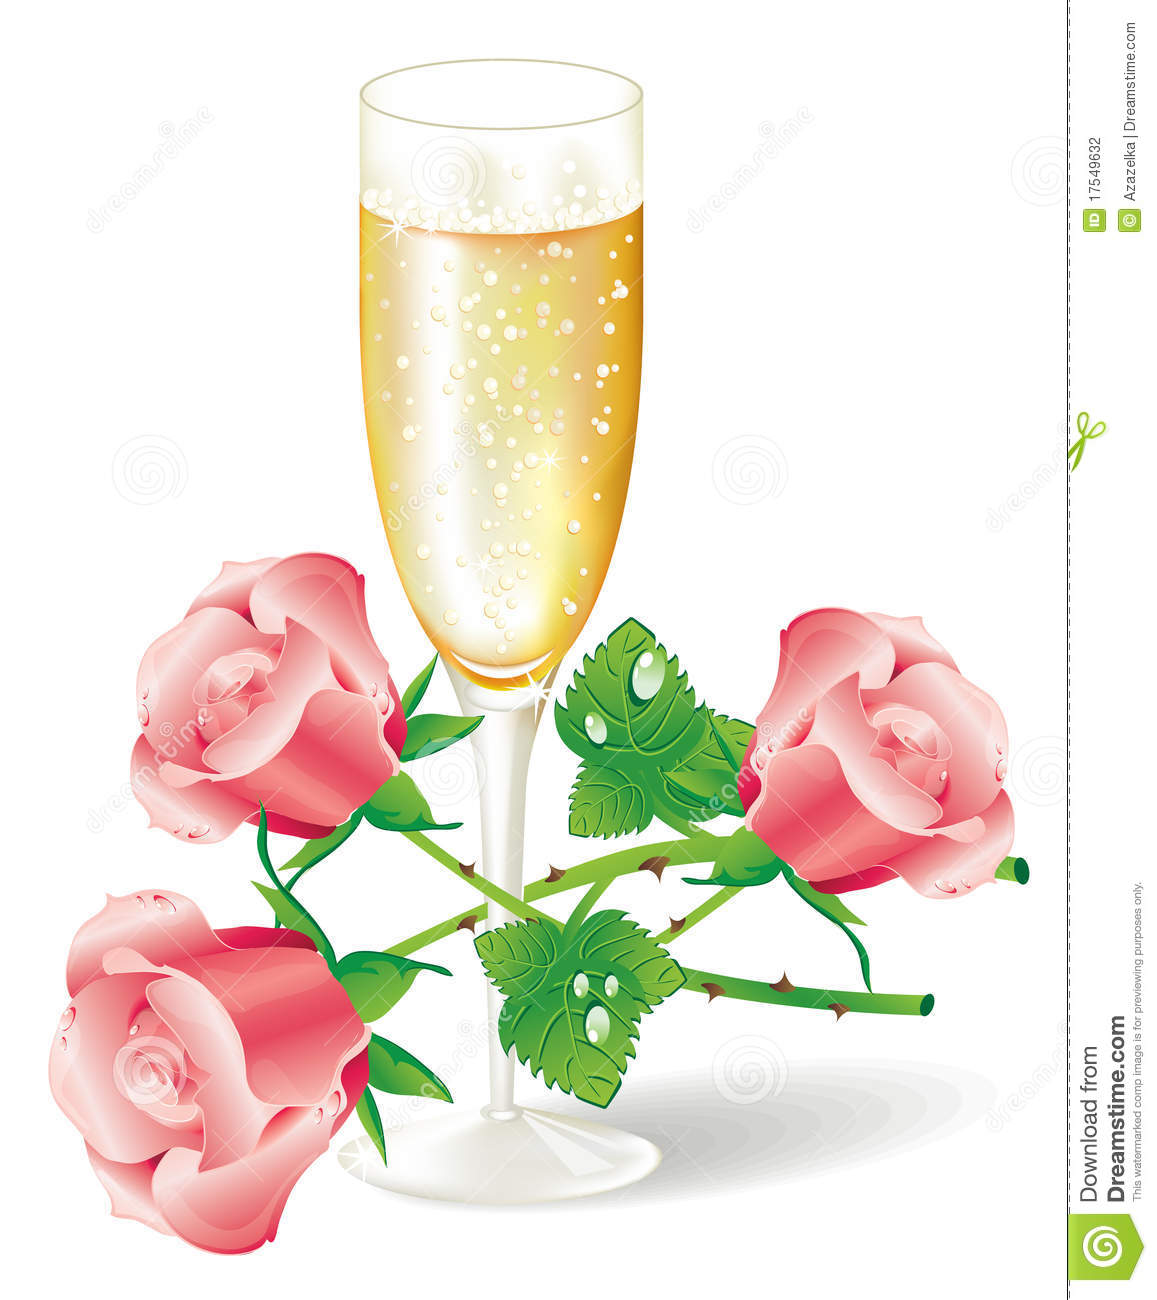 glass of champagne with pink roses stock vector illustration of rh dreamstime com